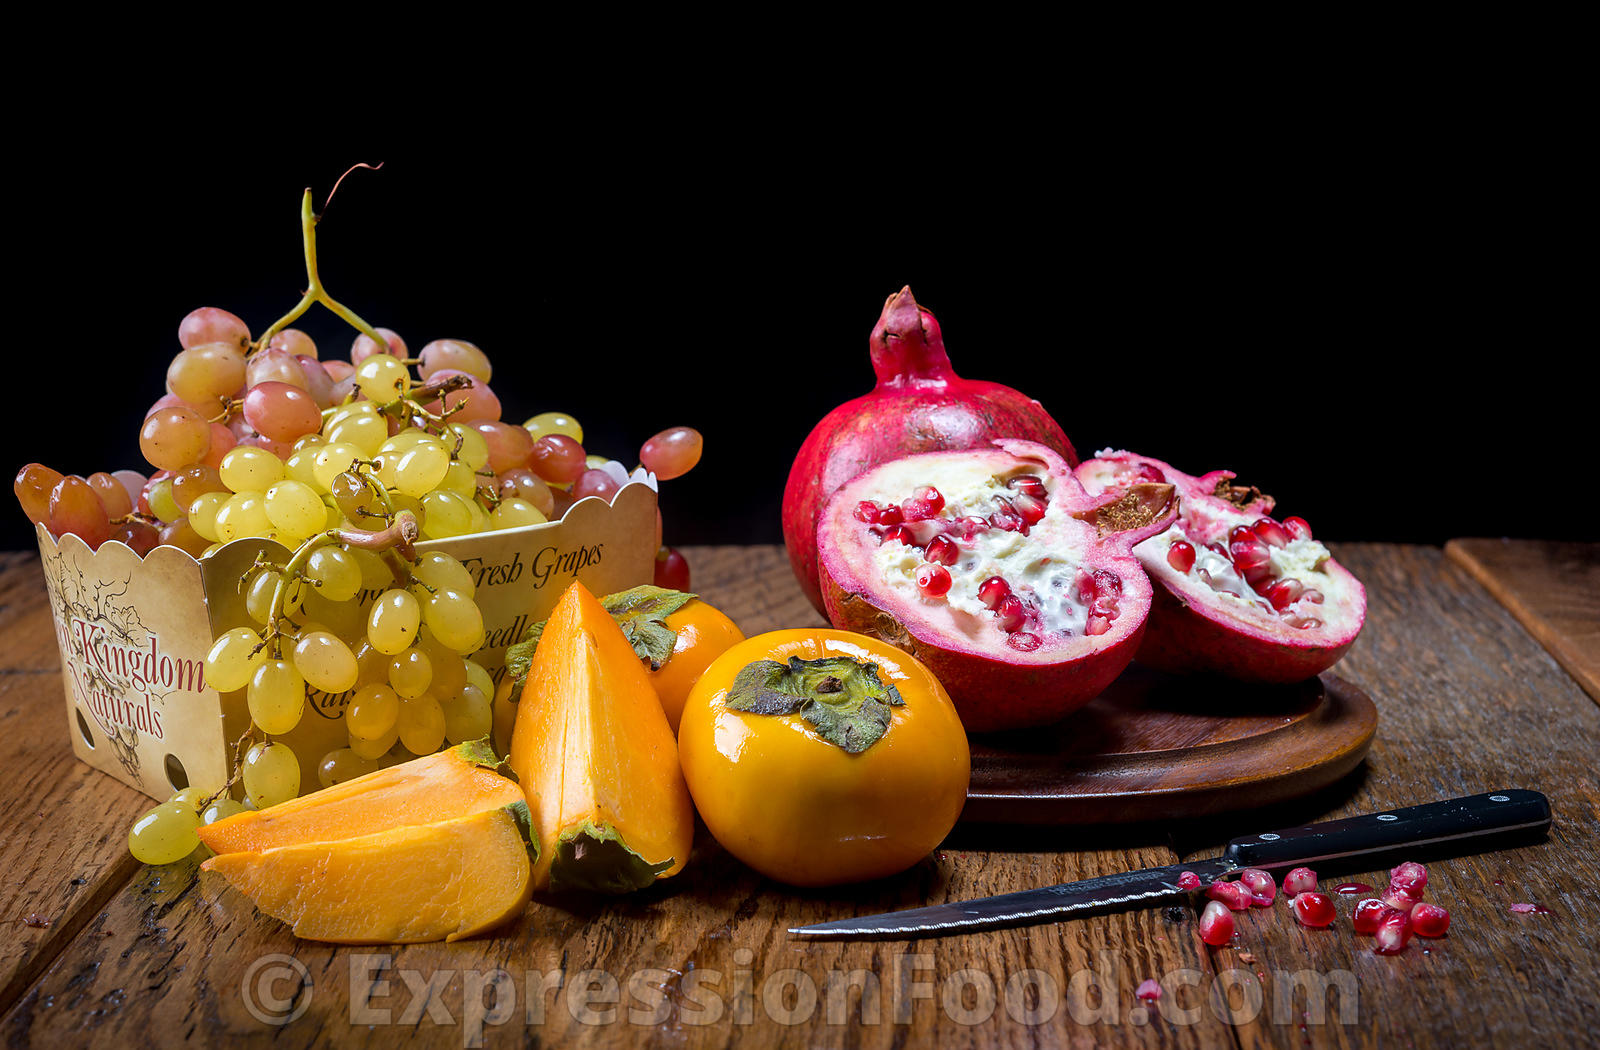 Pomegranates & Grapes